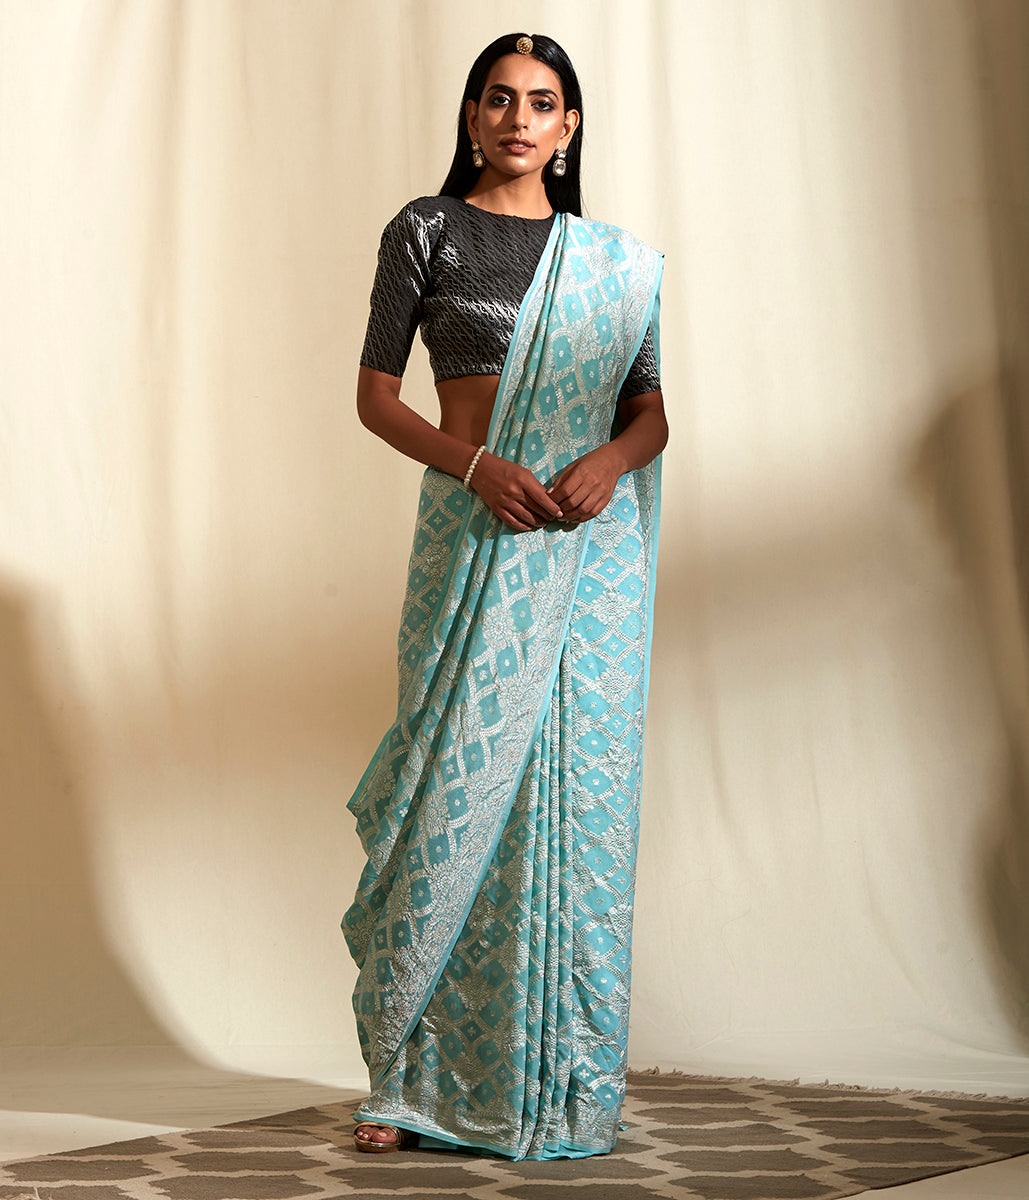 Handwoven Powder Blue Banarasi Jaal with Silver Zari